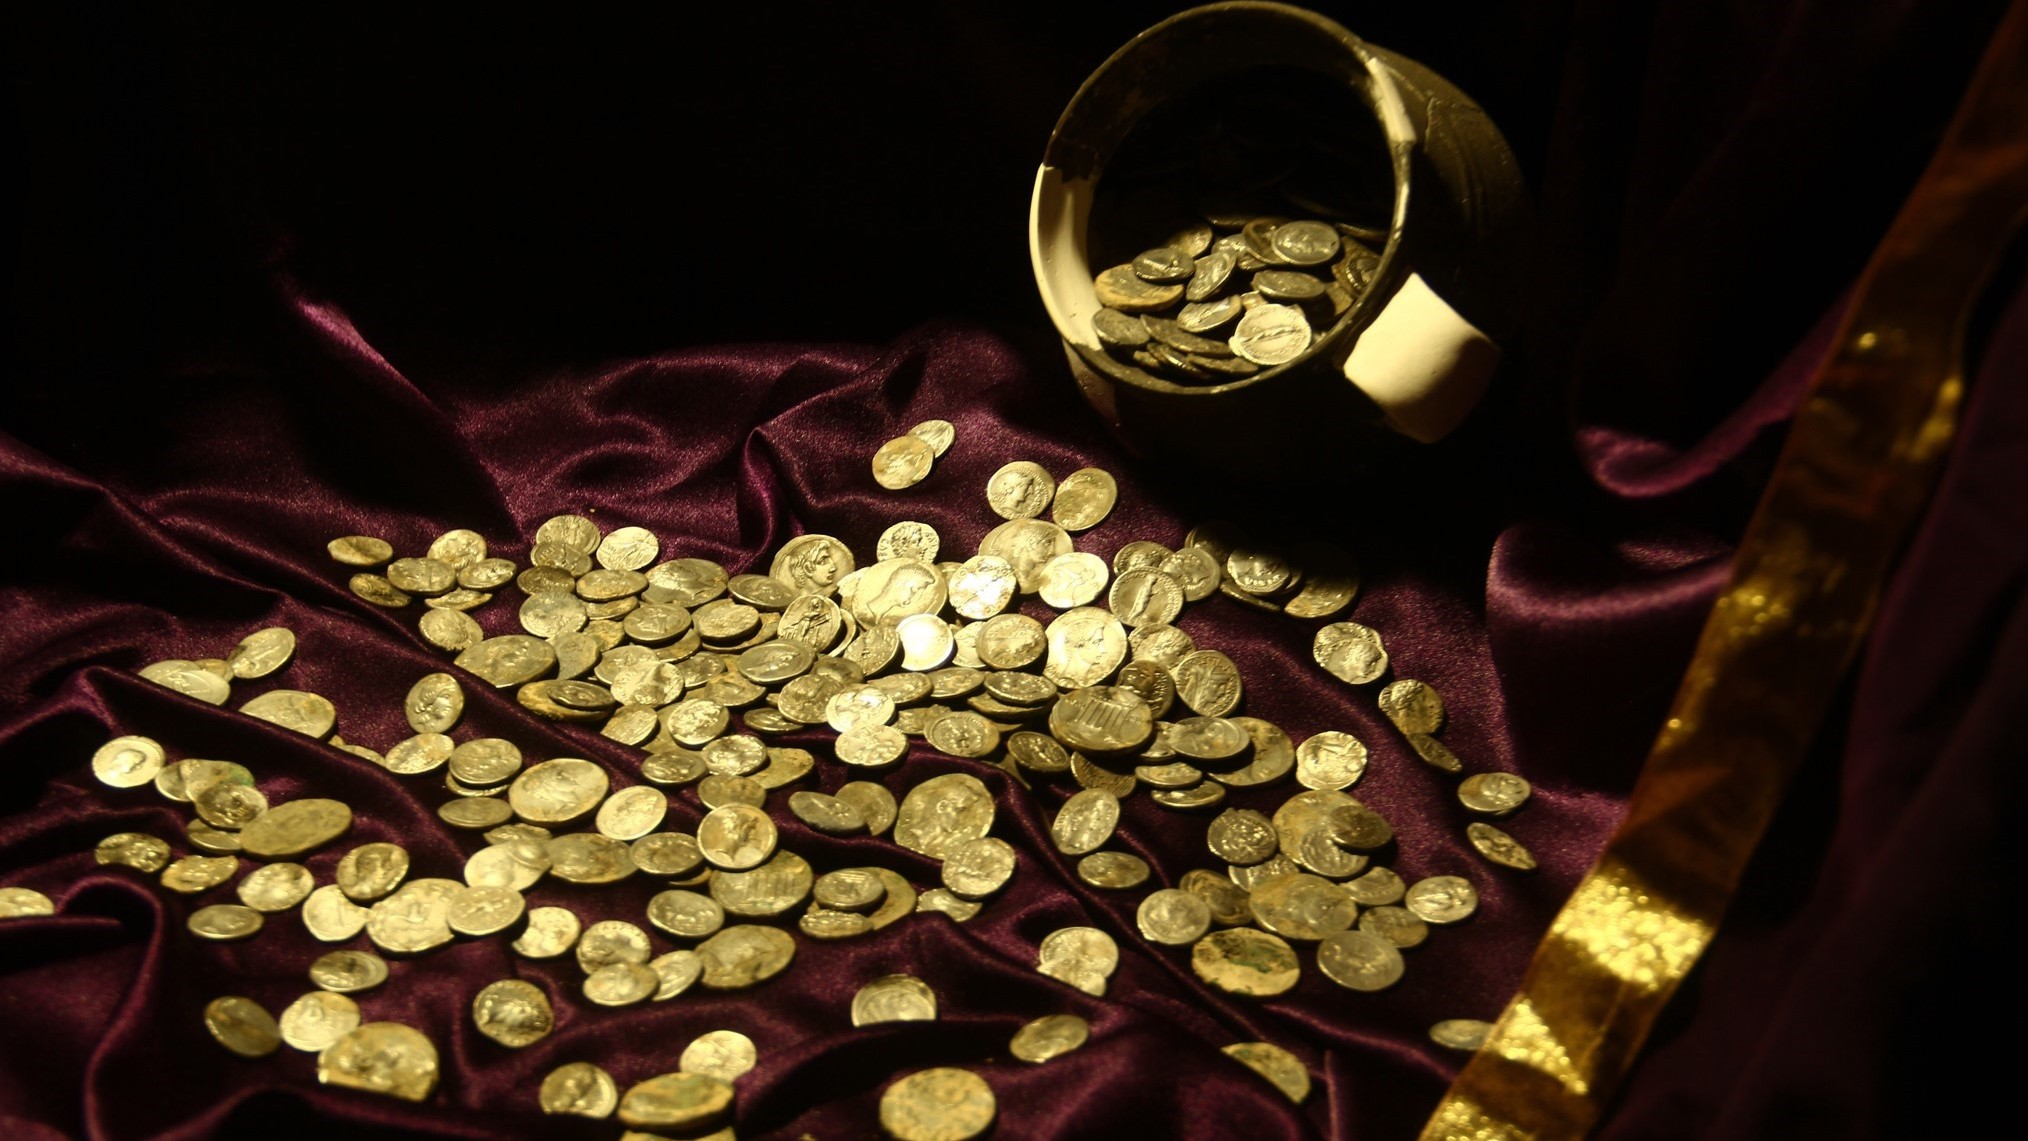 It's possible that a high-ranking soldier buried the treasure.